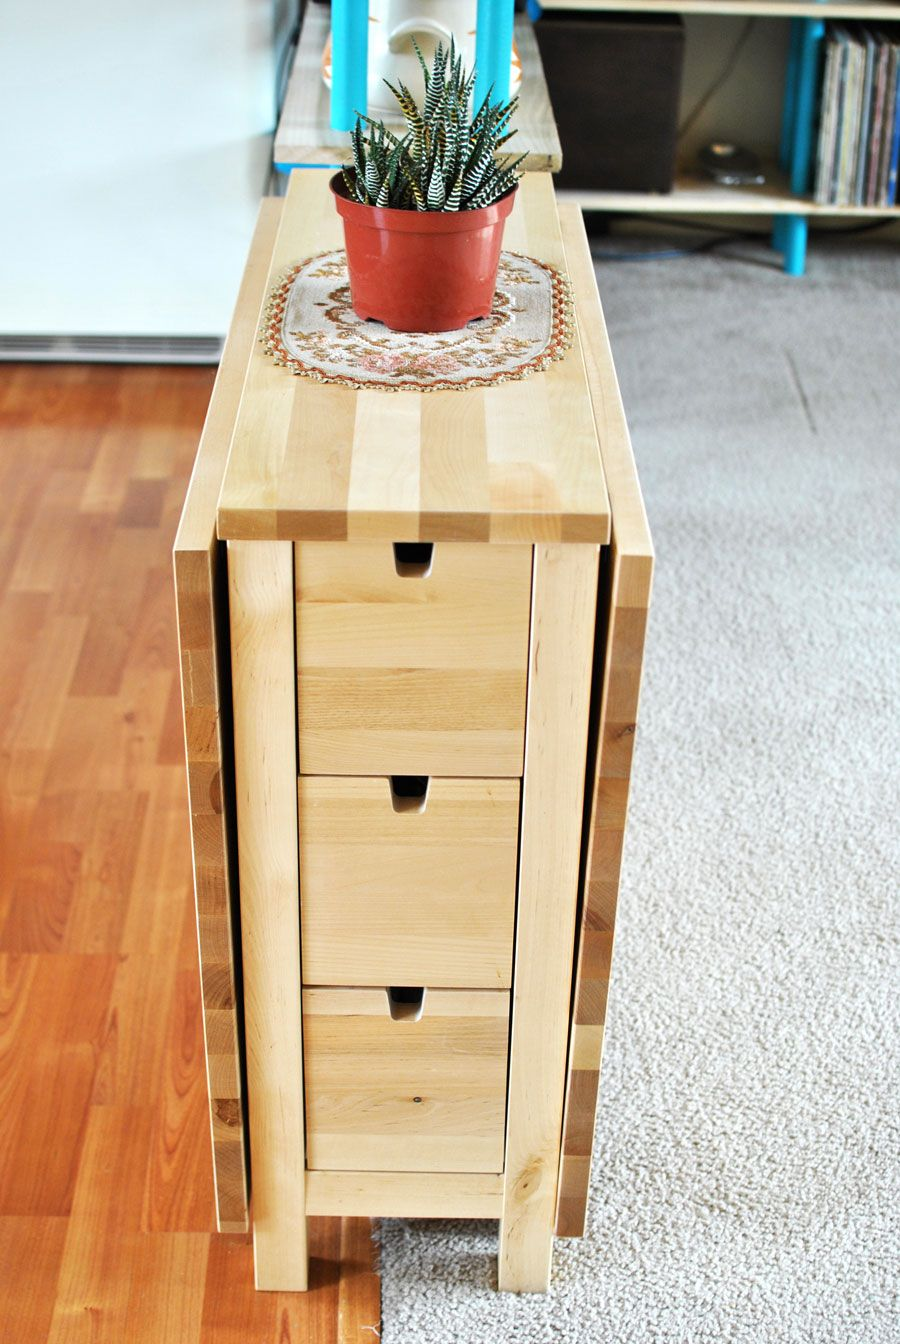 The Norden E Saving Dining Table From Ikea With 3 Skinny Drawers And It S Sides Folded Down A Succulent In Center Of Birch Wood